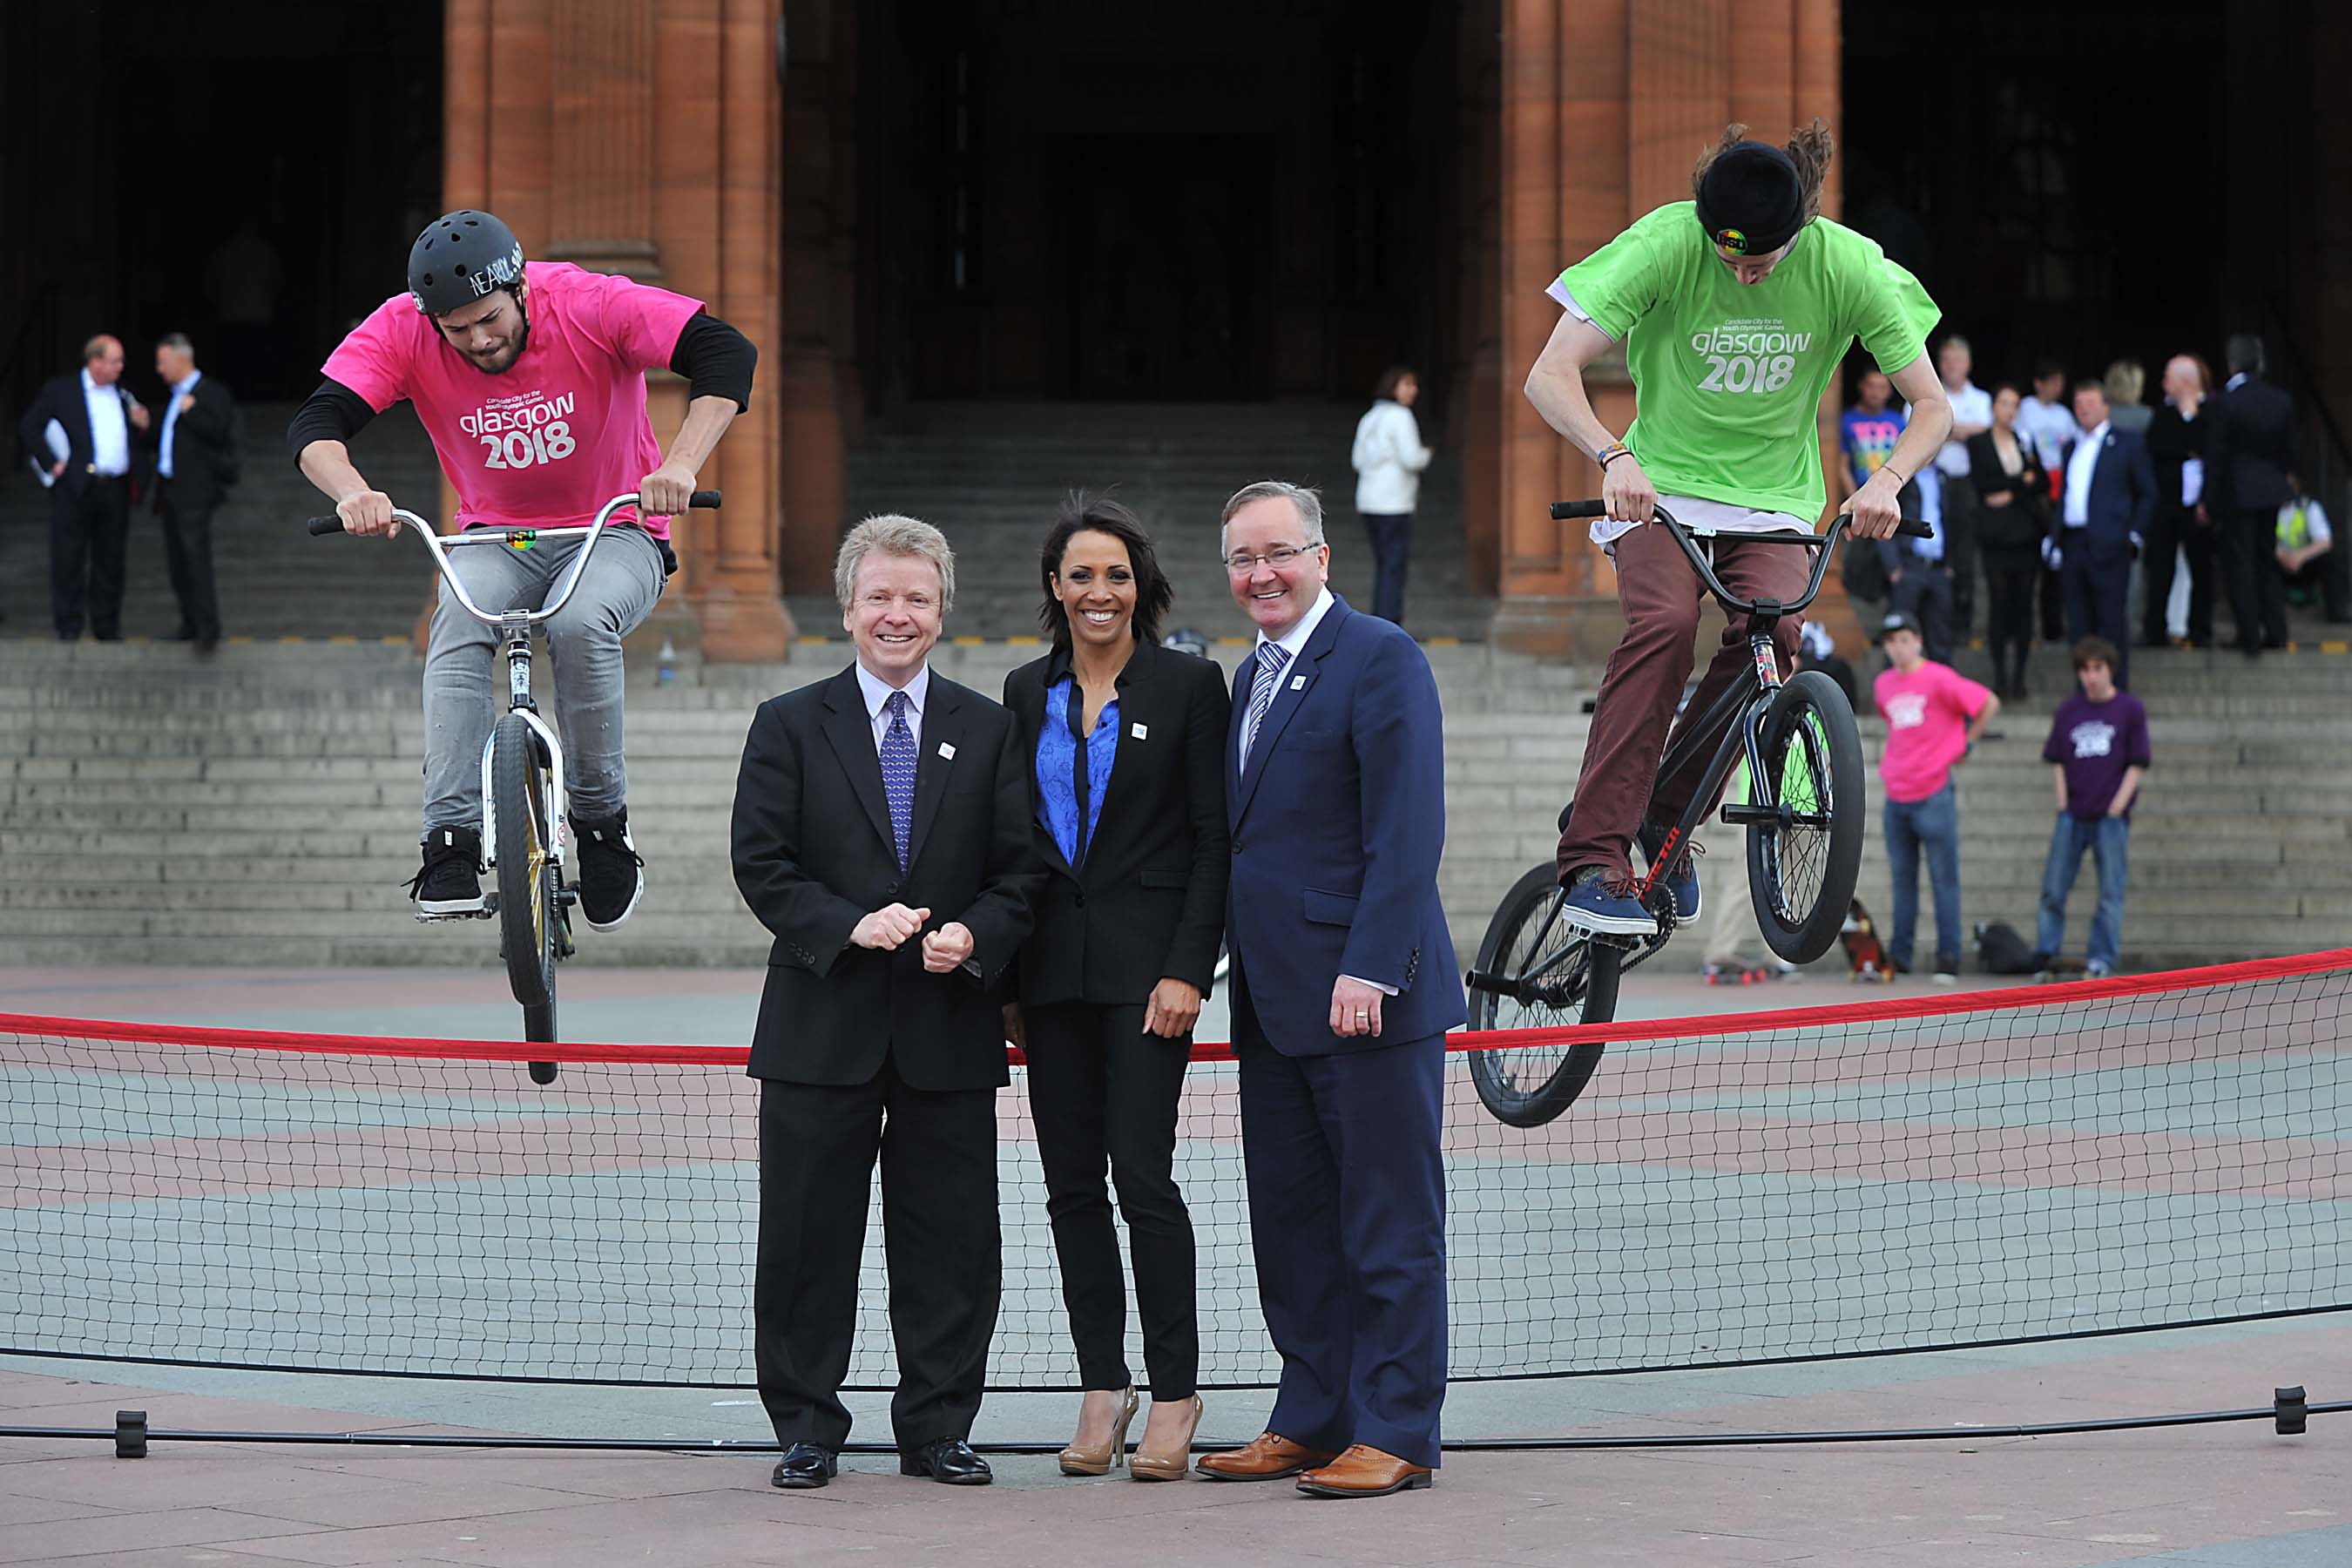 Dame Kelly_Holmes_at_Glasgow_2018_launch_June_19_2012